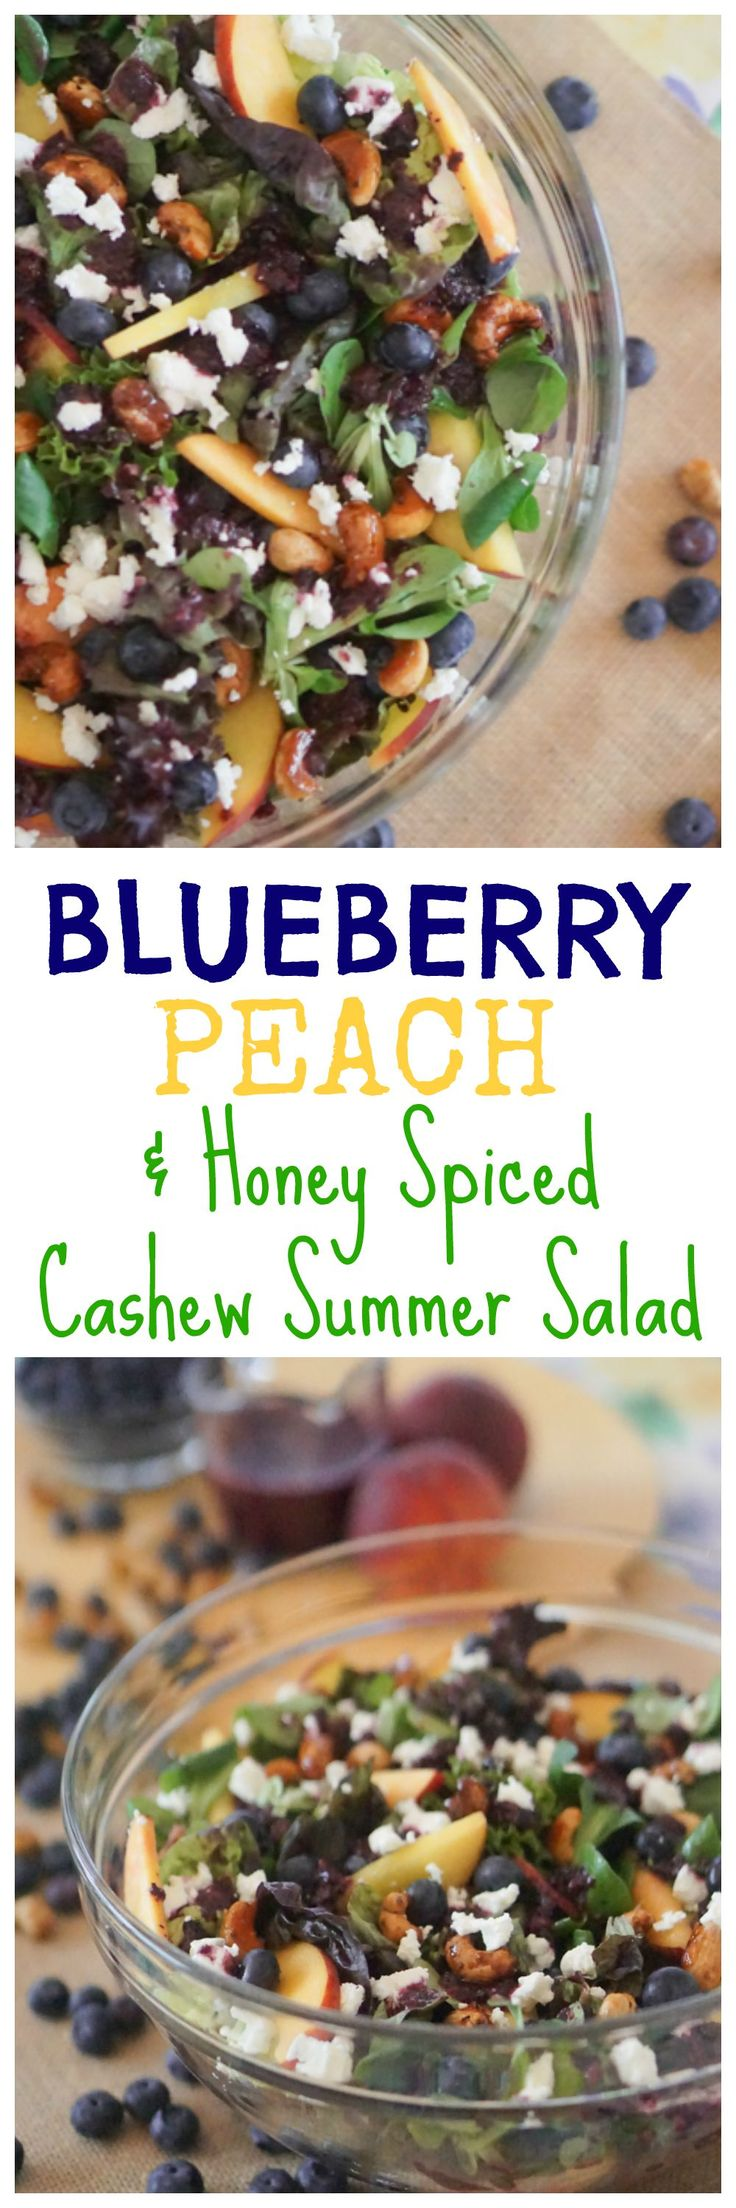 Add my yummy Blueberry, Peach & Honey Spiced Cashew Summer Salad recipe to your go-to salad recipe list! #BCBlueberries #ad